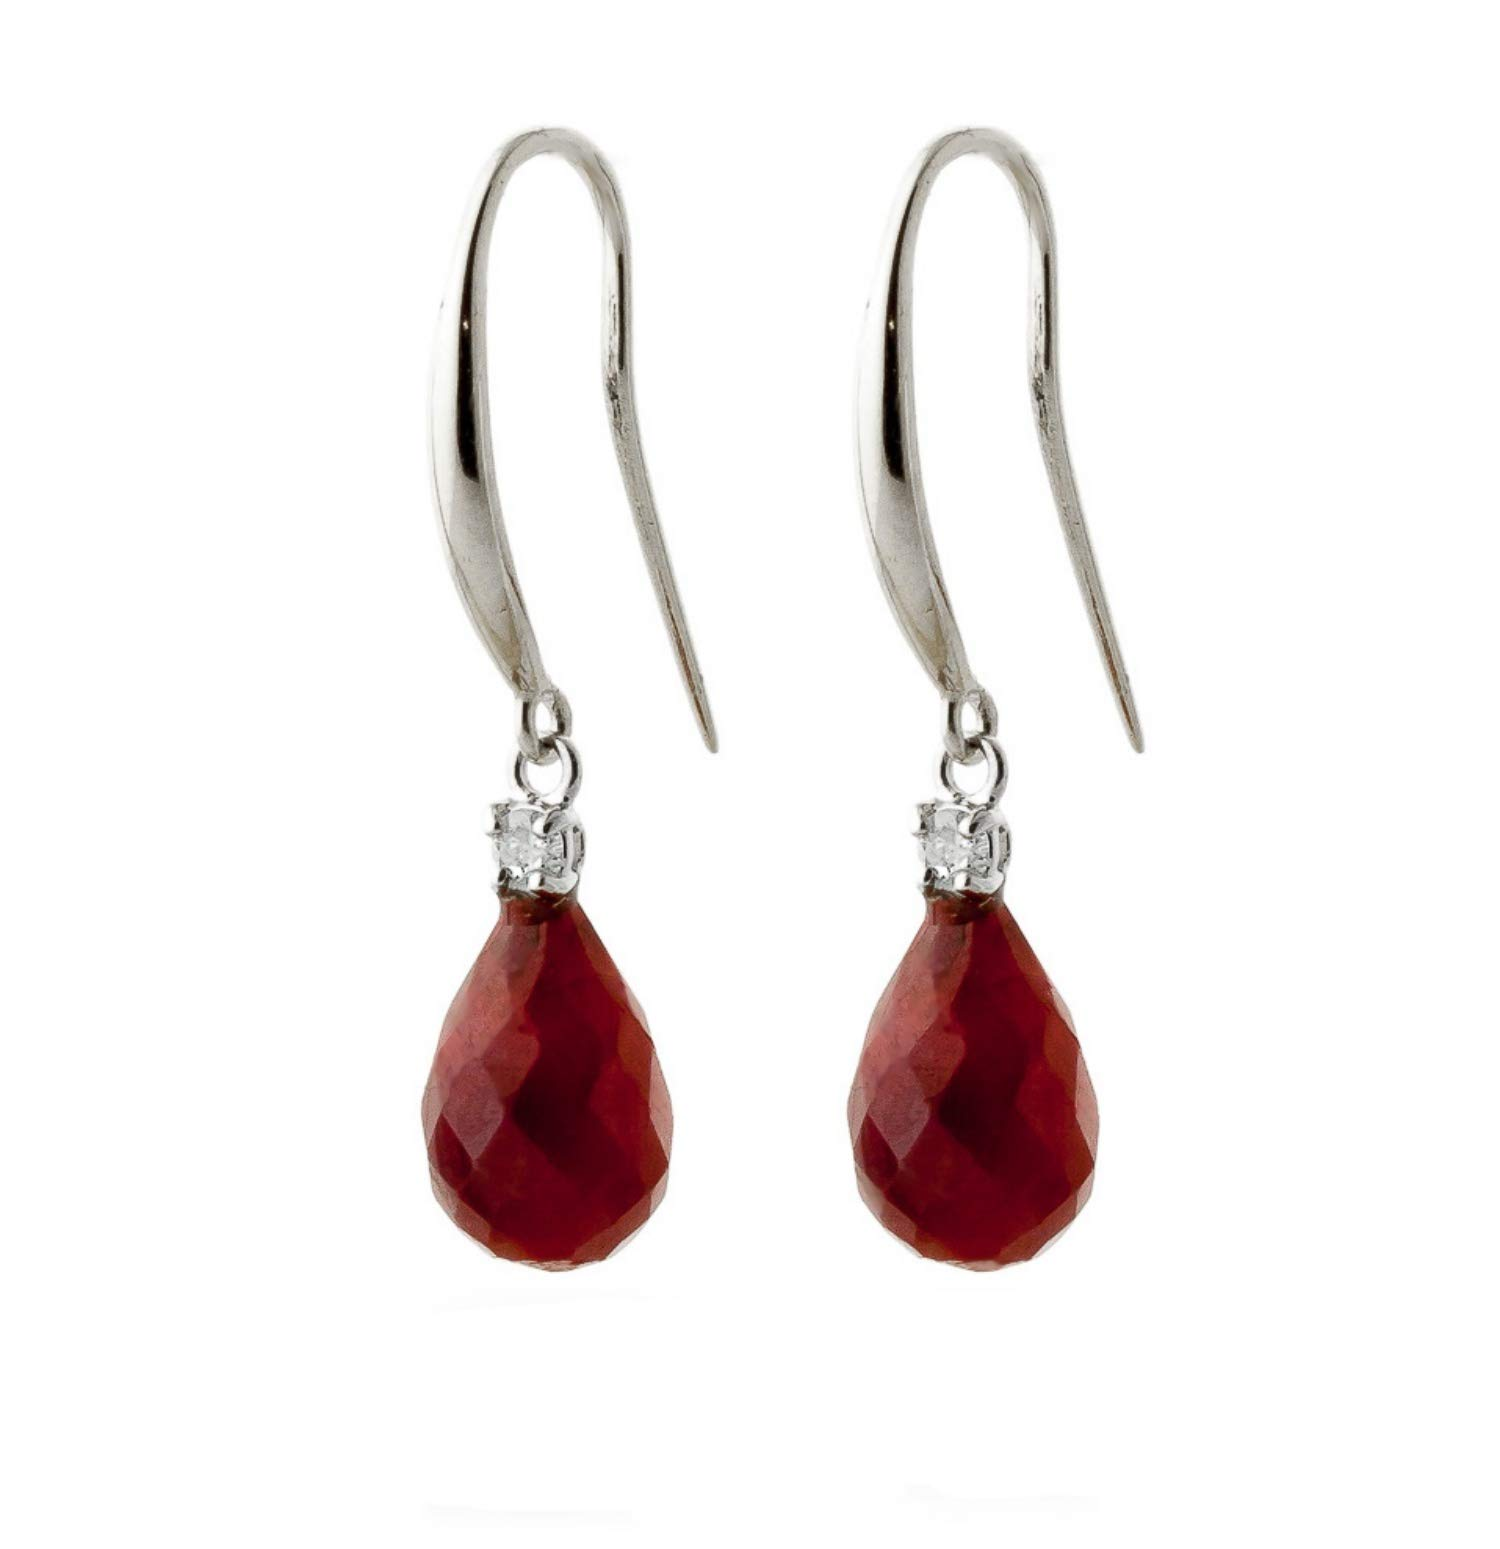 14k White Gold Fish Hook Earrings with Diamonds and Rubies by Galaxy Gold (Image #2)